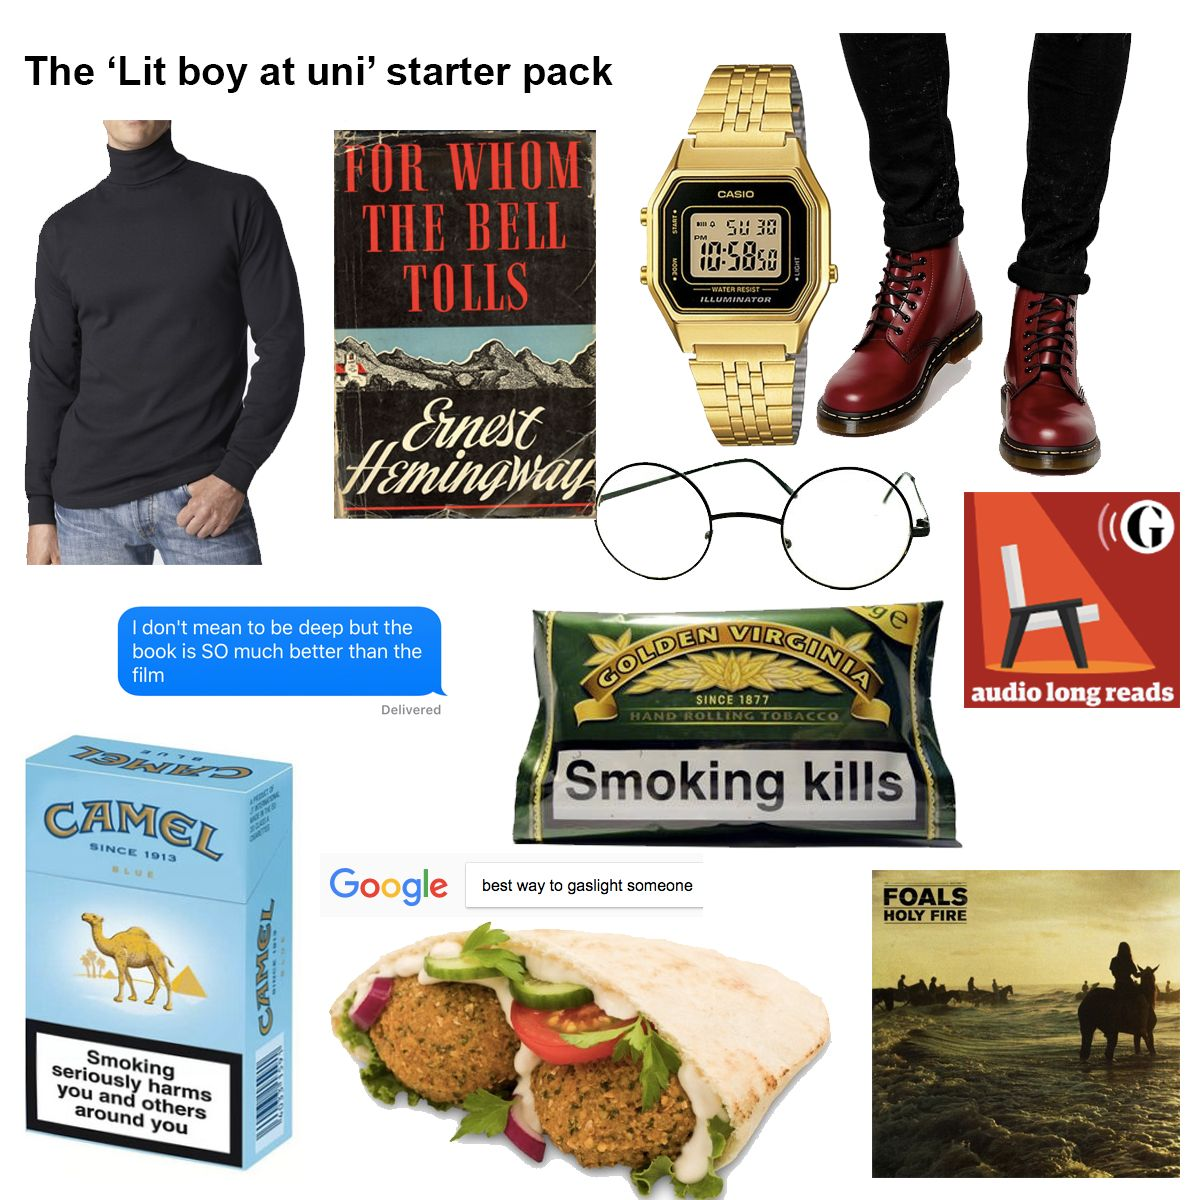 This is every single boy at uni condensed into a starter pack